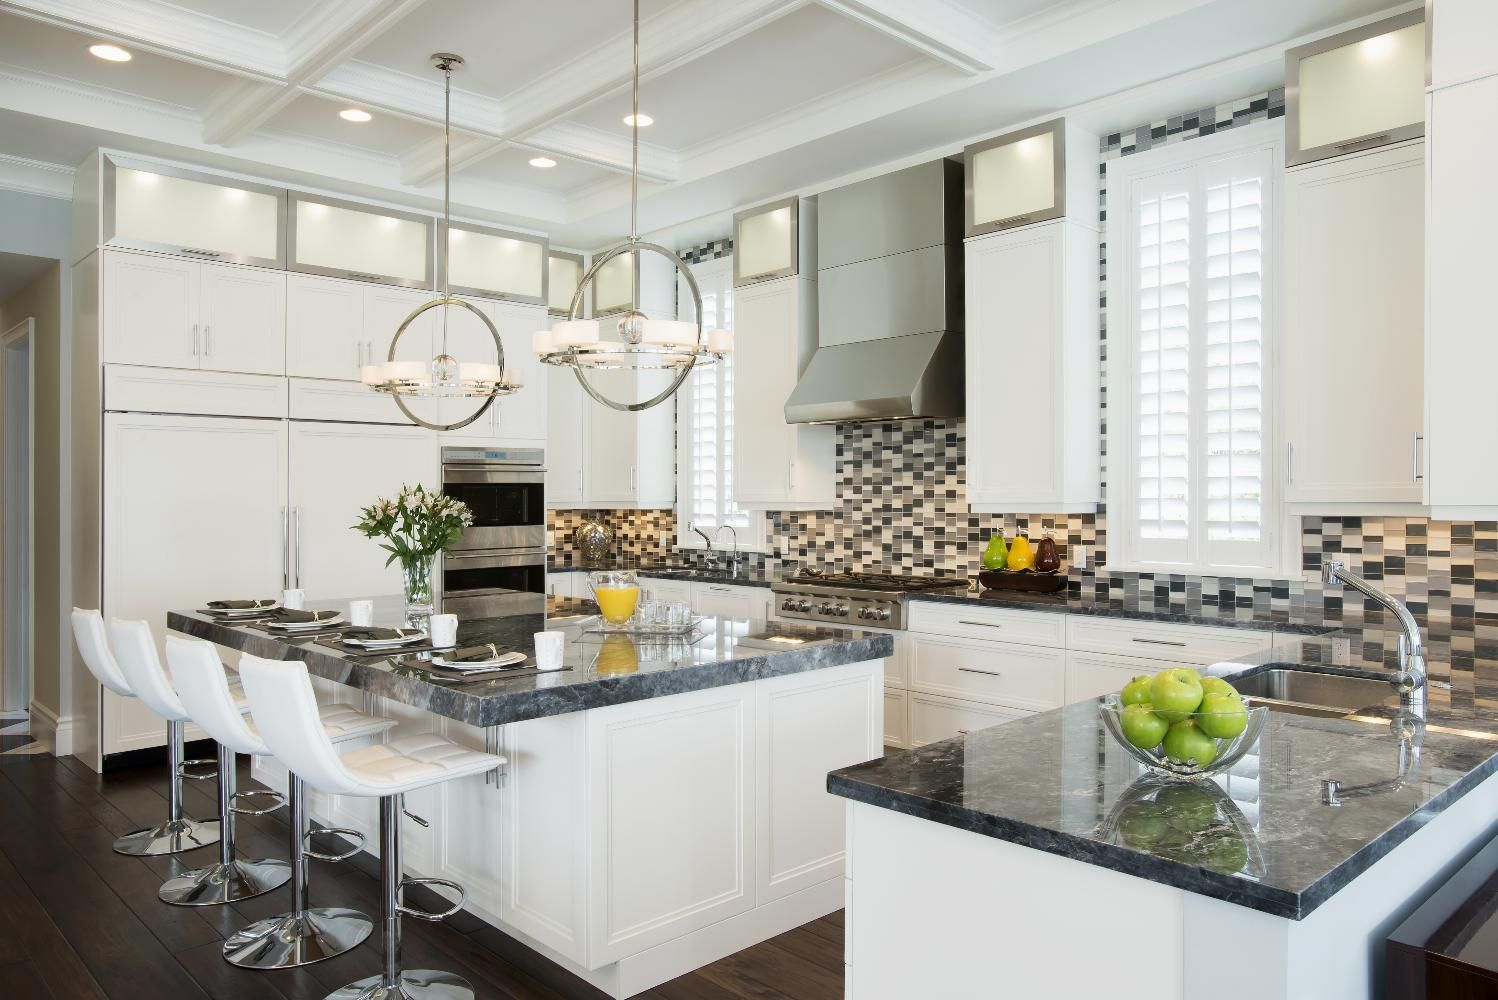 Contemporary Kitchen With Executive Cabinetry S Boca Door Style With Super White Paint And Aluminum Lift Up Doors Kitchens Direct Kitchen Kitchen Inspirations